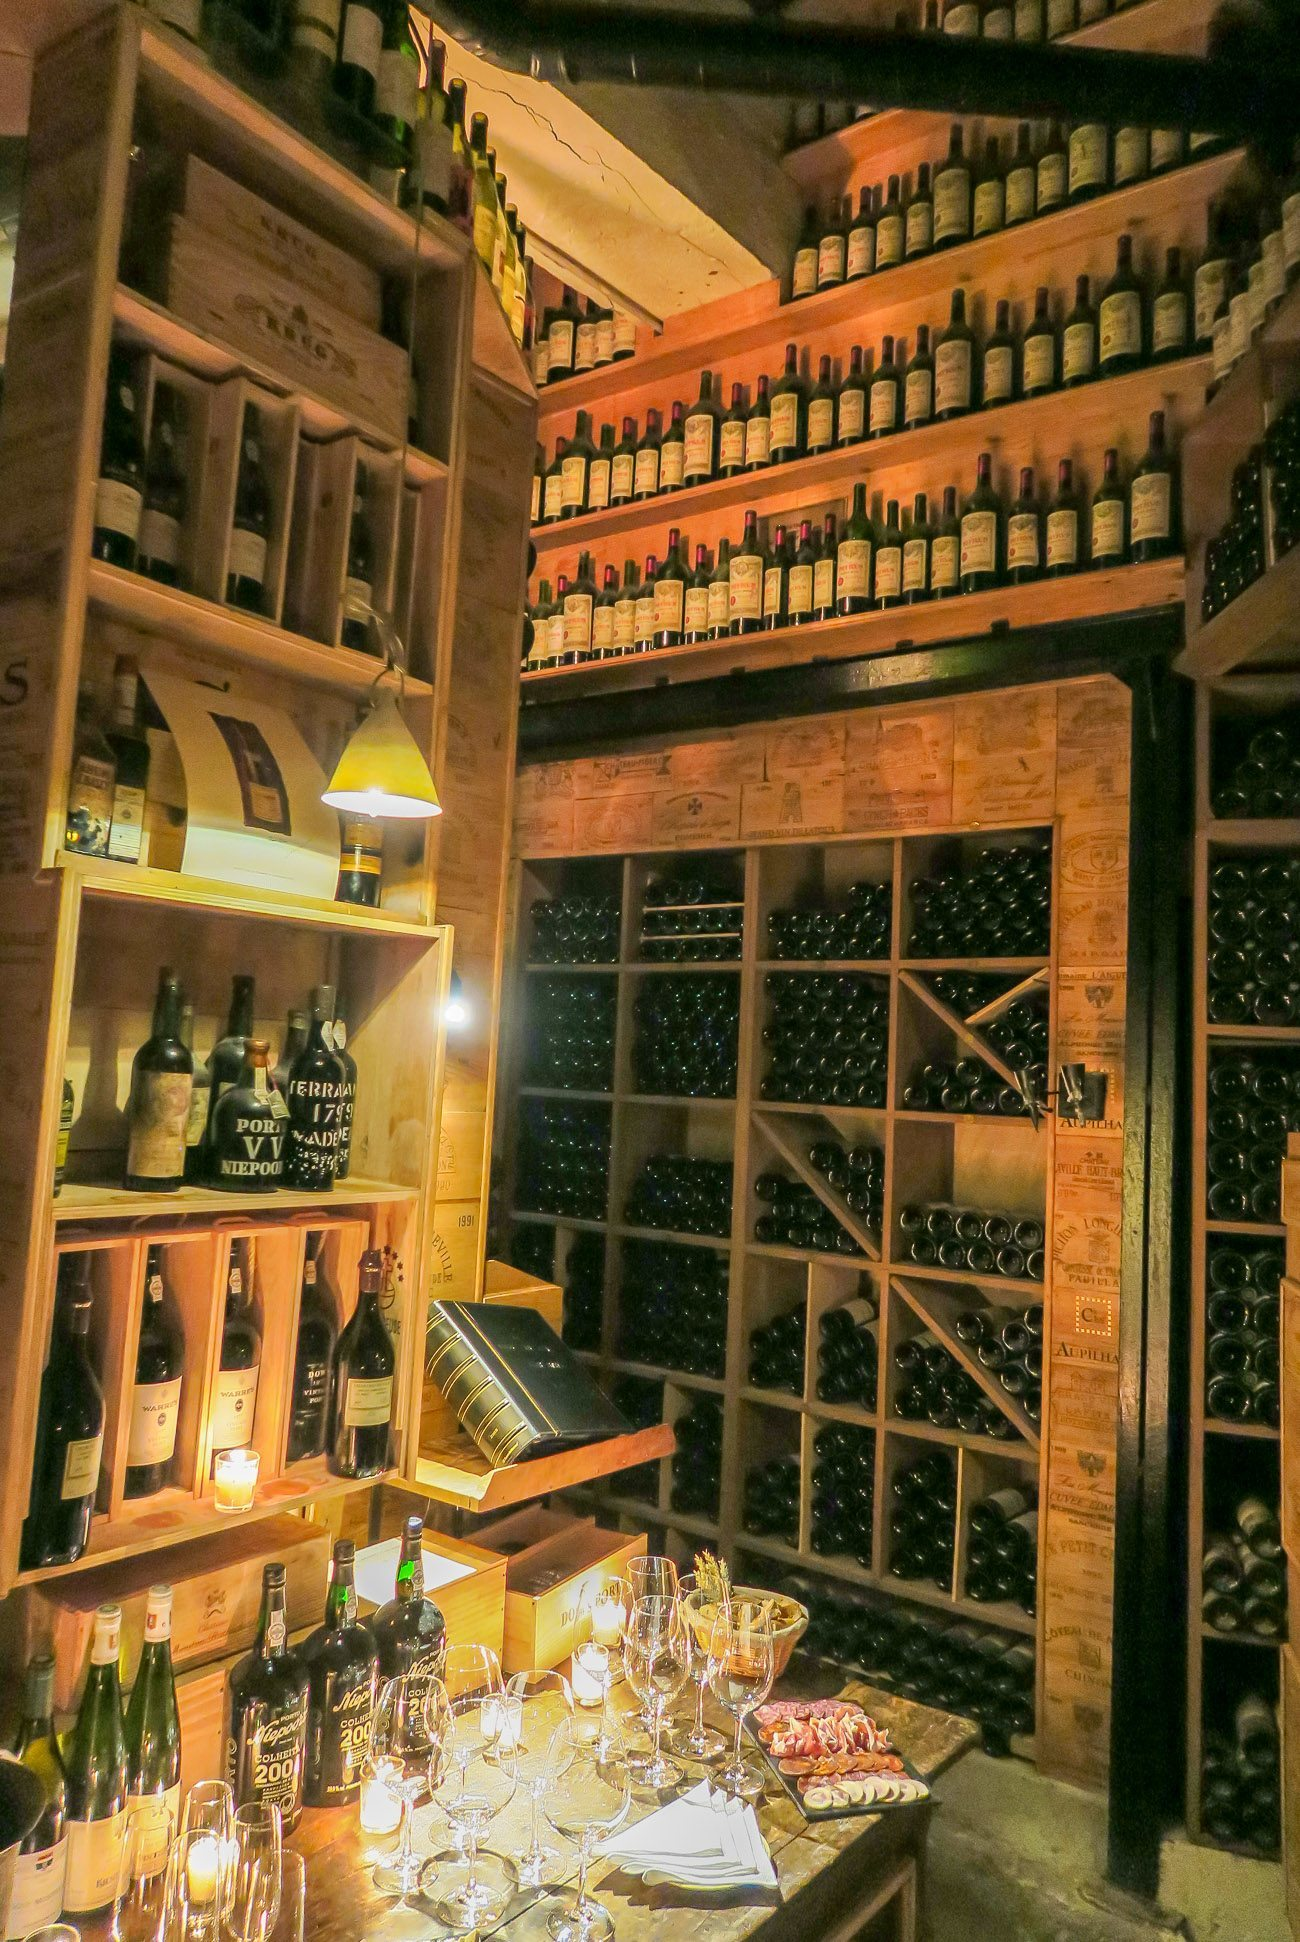 Guest of Four Seasons Hotel George V, Paris can sip the world's wine in the exclusive and historic cellar.